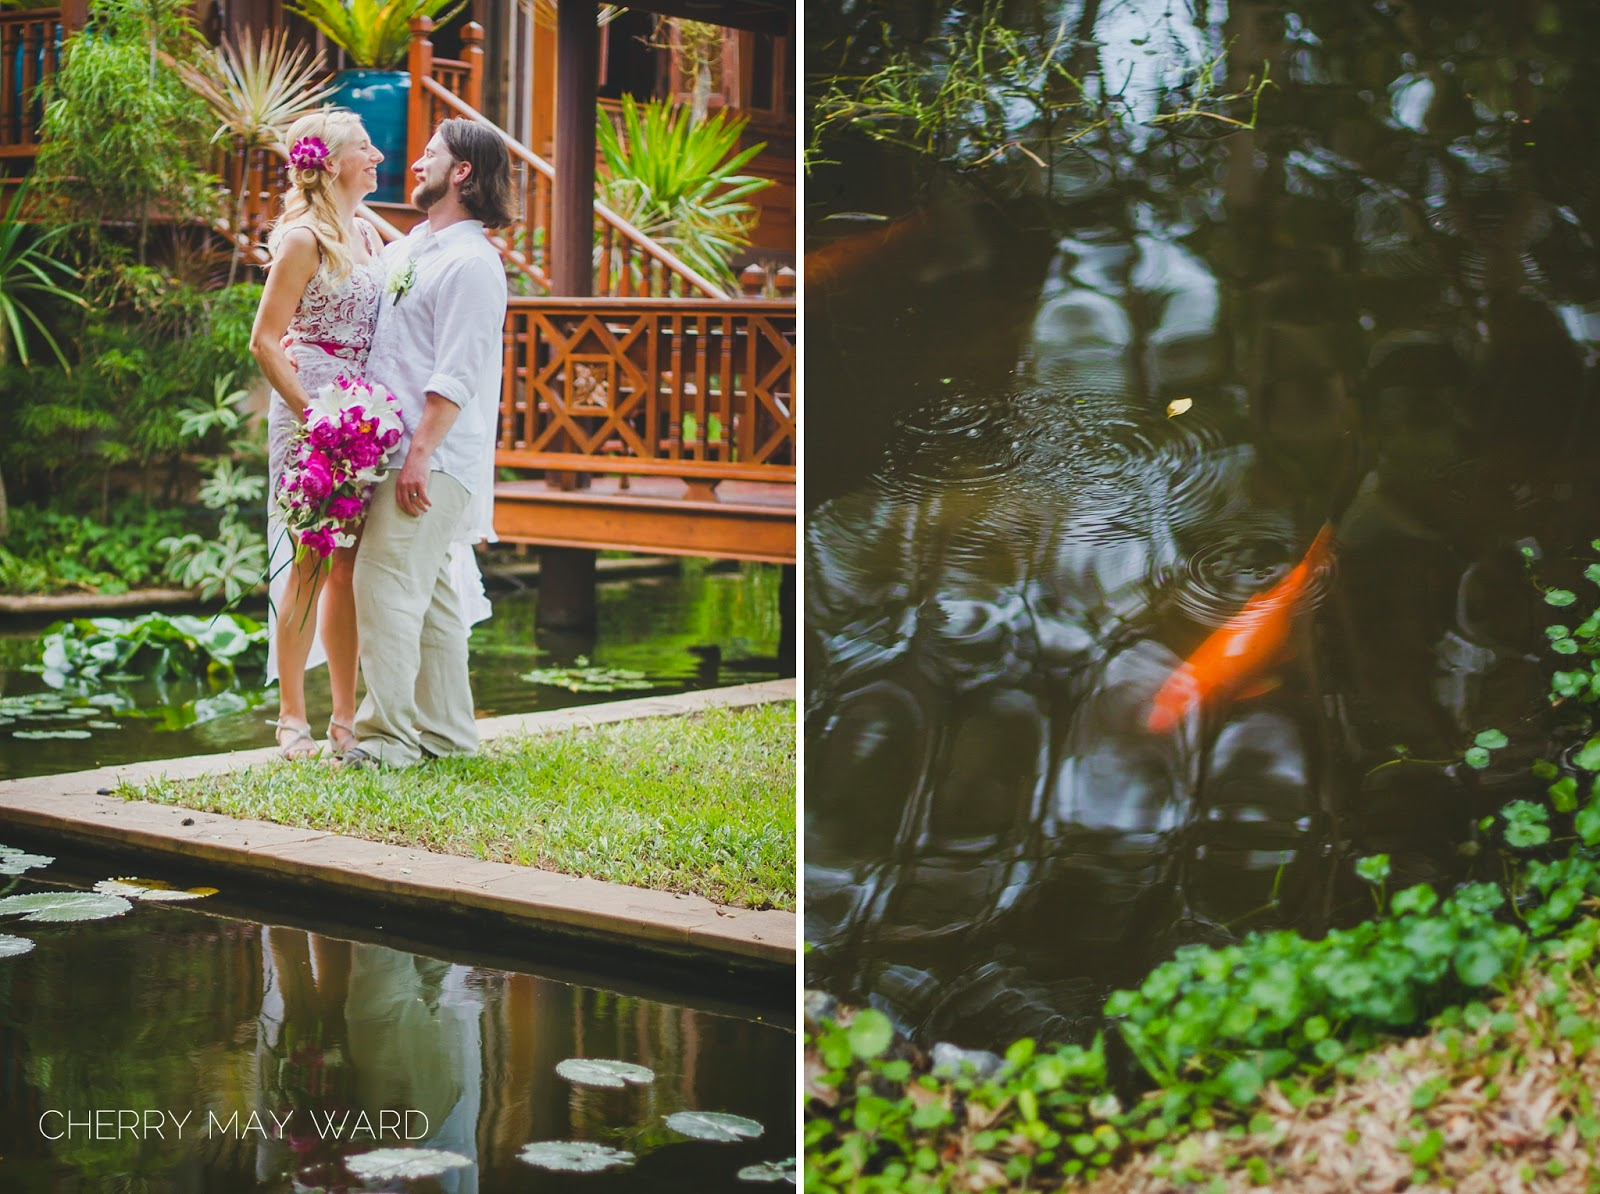 bride and groom portraits in Thai villa gardens, fish in pond in gardens, beautiful bride and groom portraits in Thai gardens, destination wedding, classic Thai style villa